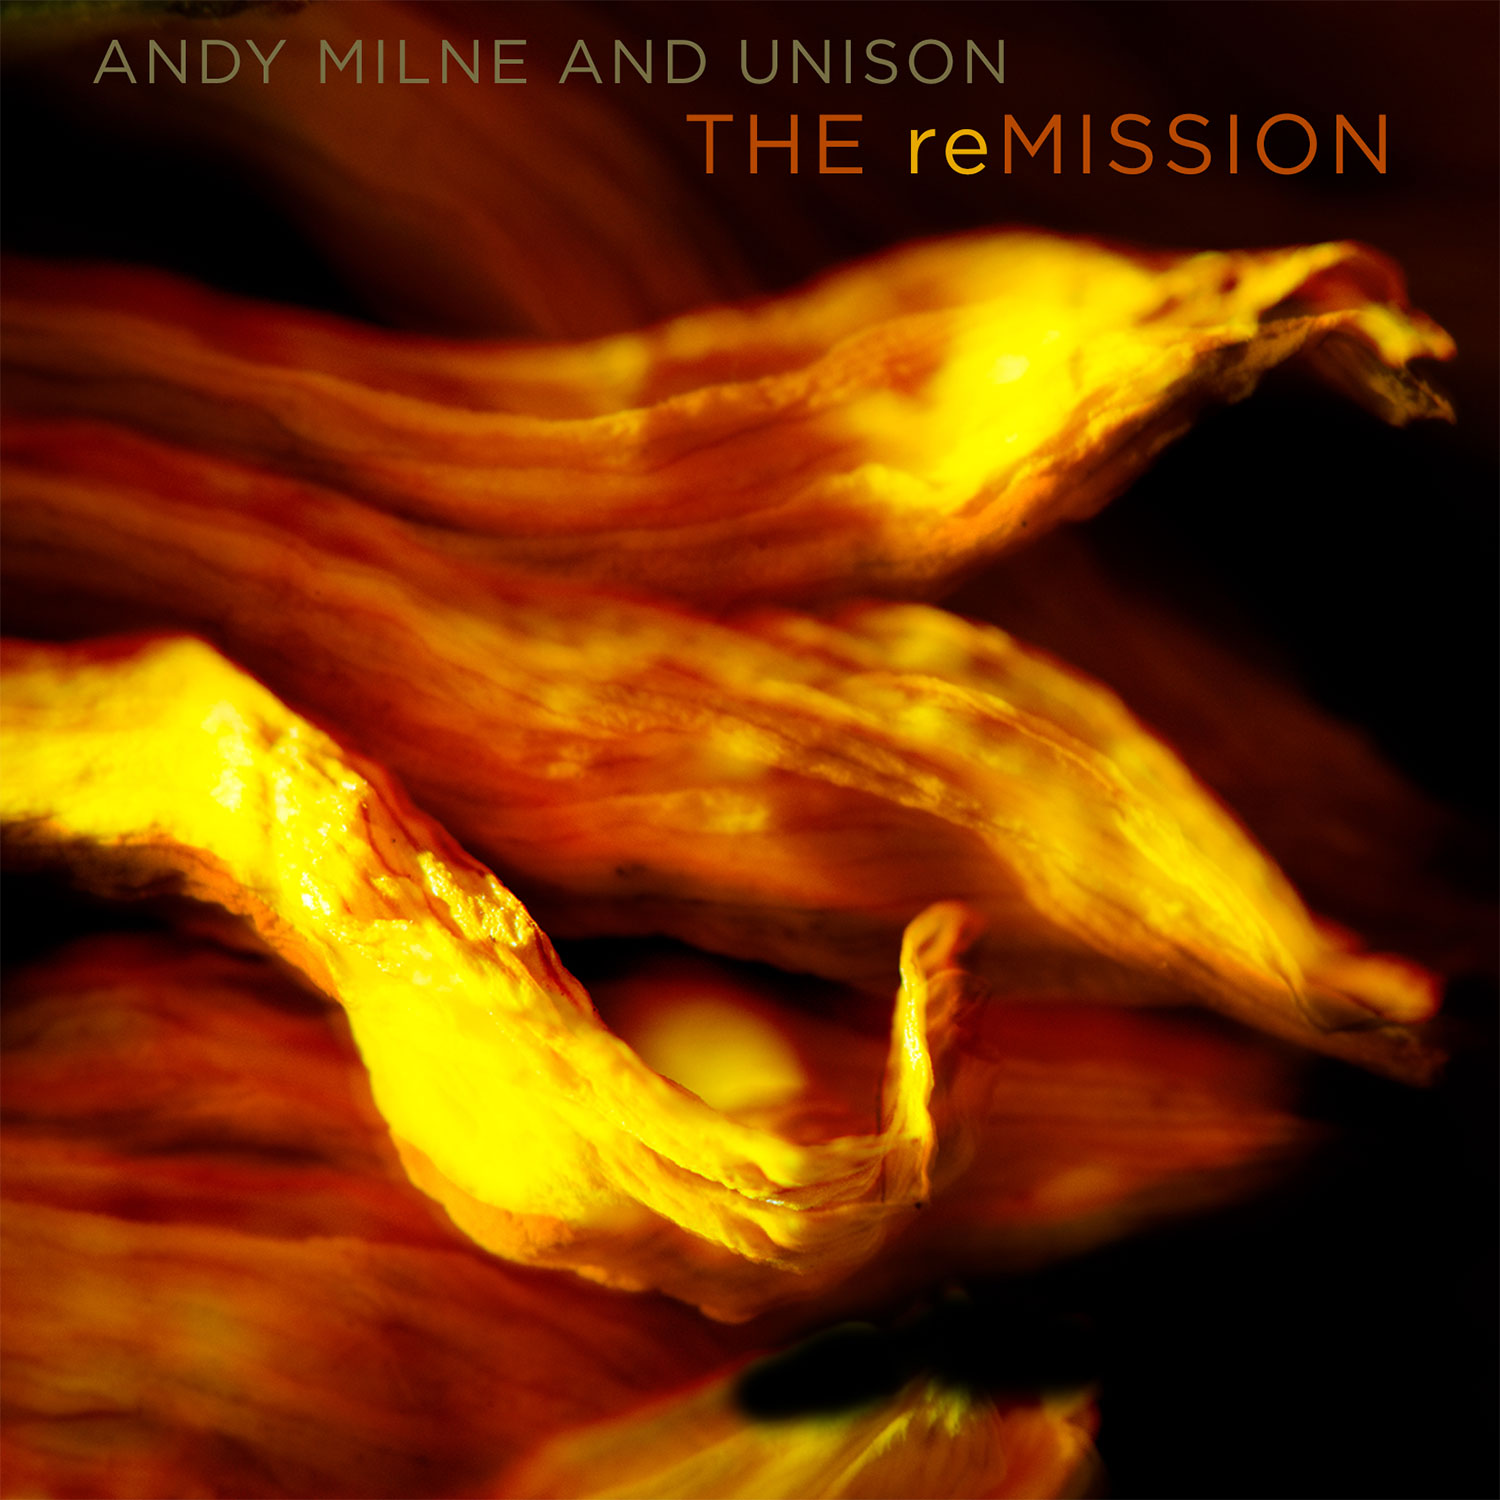 NEW RELEASE: Andy Milne's First Album with his UNISON TRIO, 'The reMission', is out 4/10 on Sunnyside